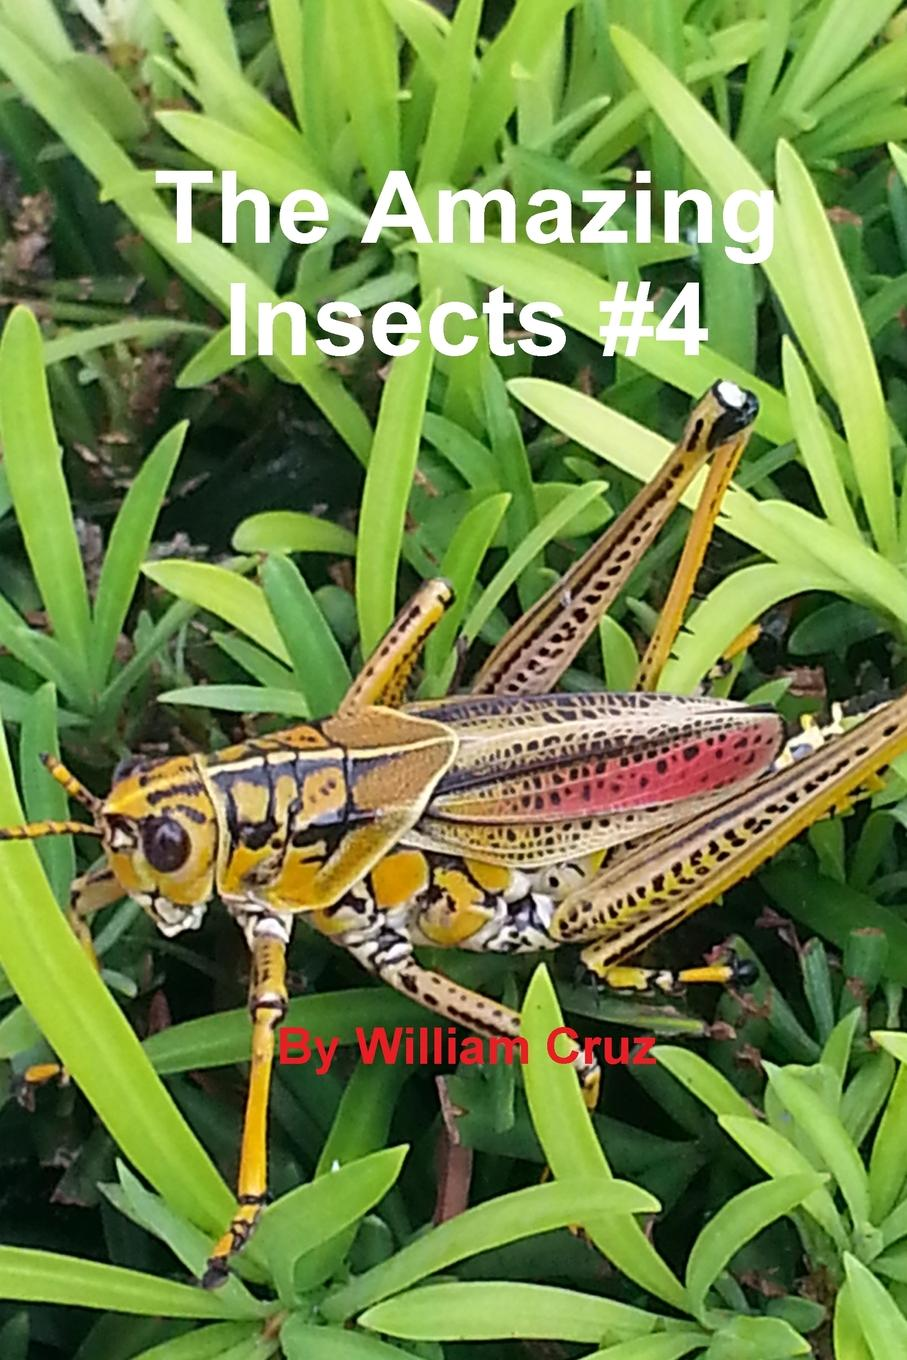 William Cruz The Amazing Insects .4 and you will know us by the trail of dead and you will know us by the trail of dead worlds apart